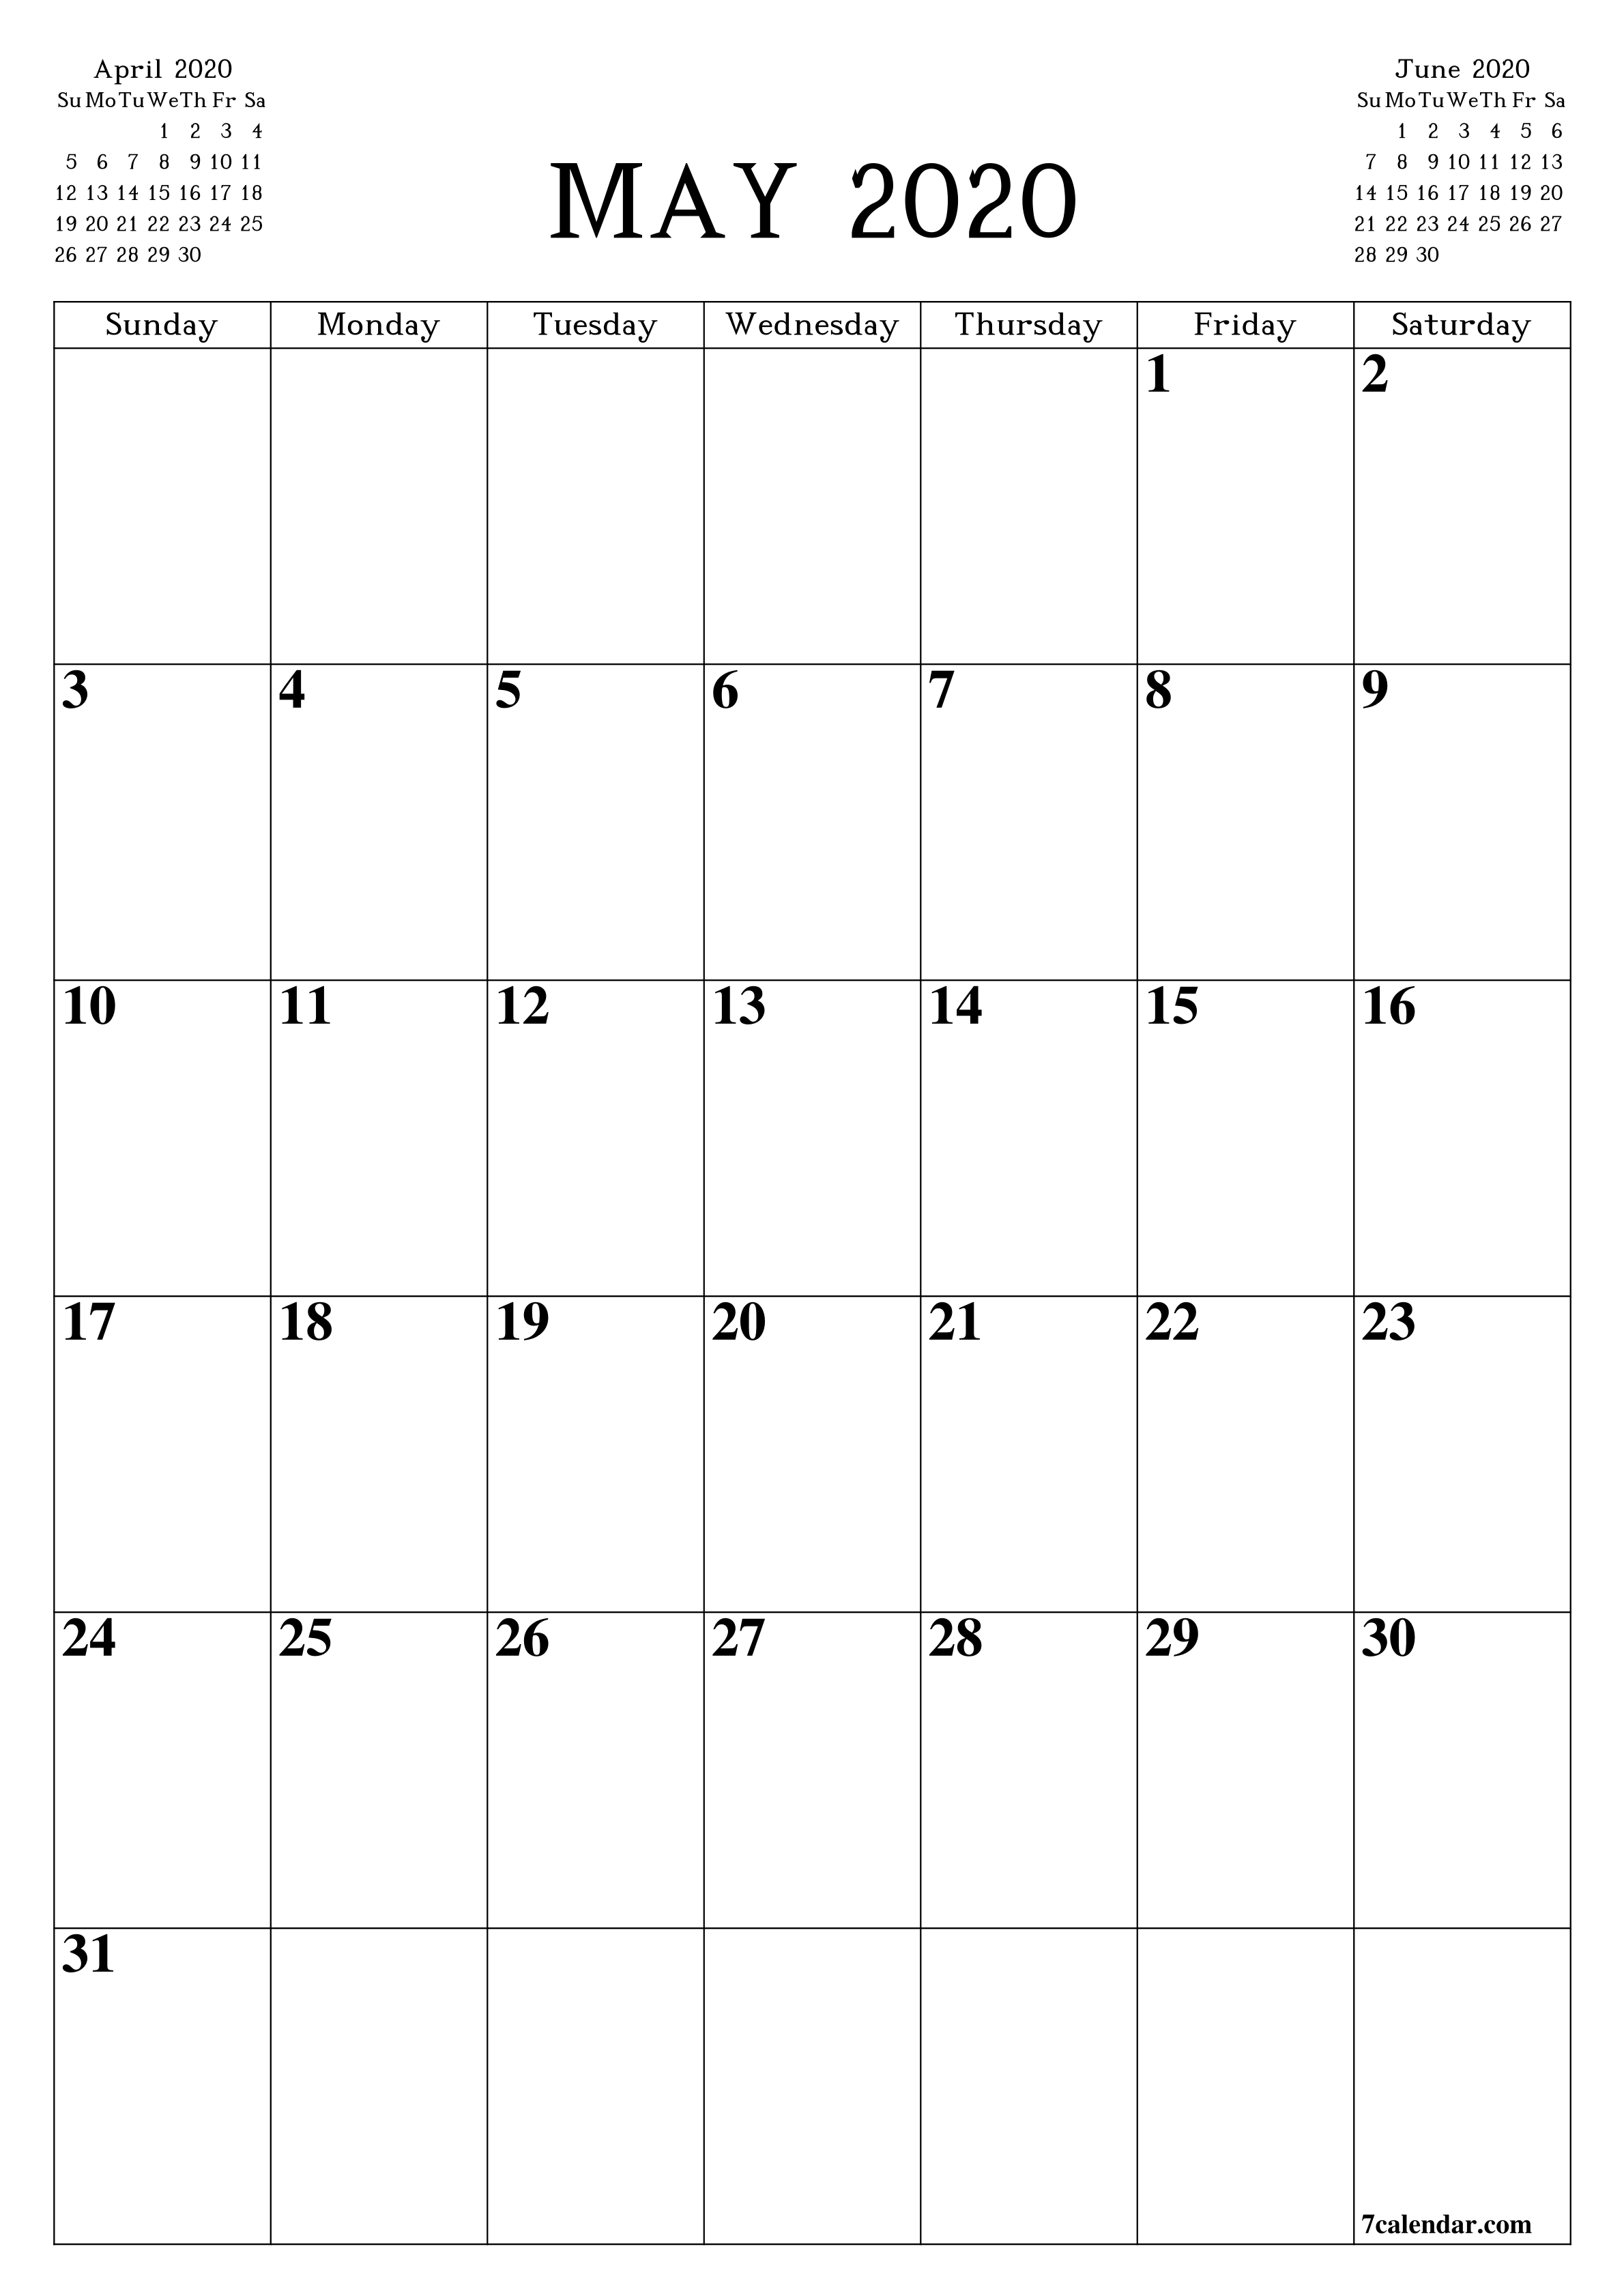 Free Printable Blank Monthly Calendar And Planner For May  A3 Printable Calendar 2020